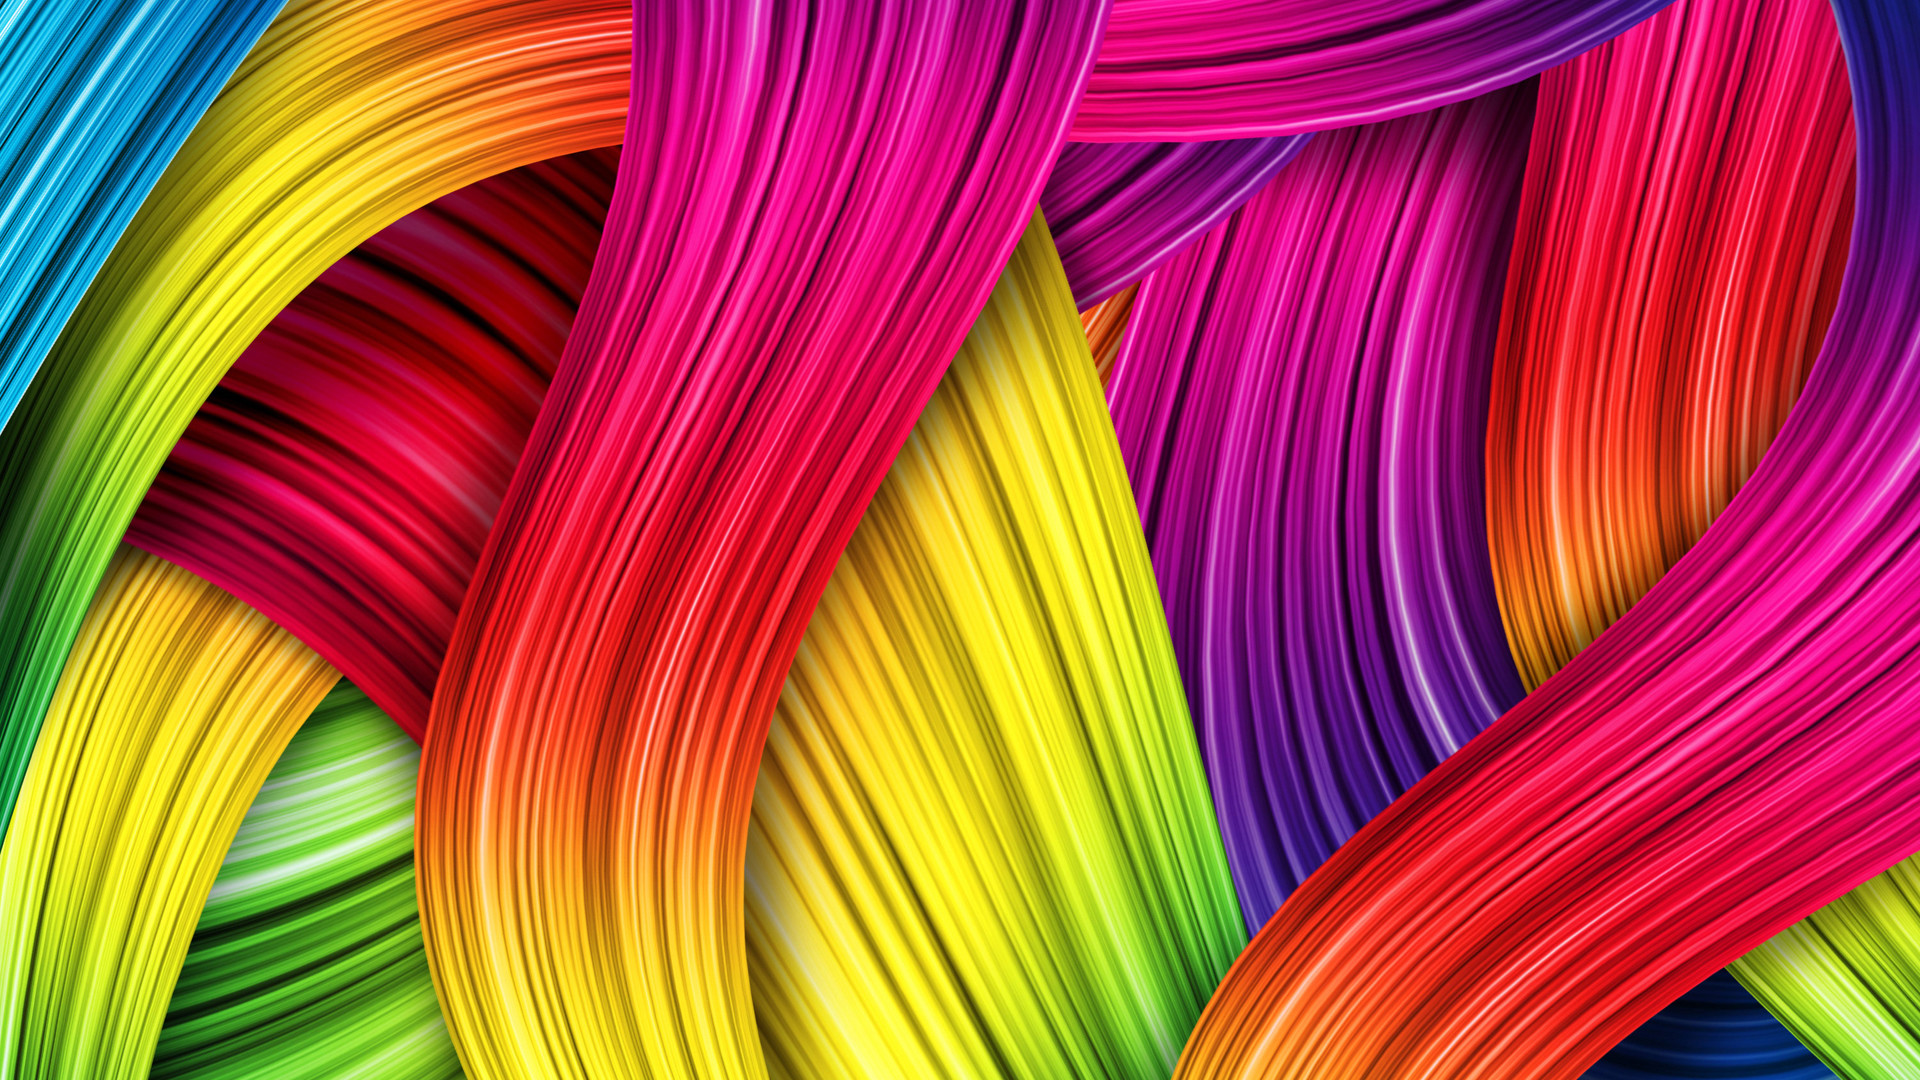 Animated Colorful Thread Wallpaper With Resolutions 1920×1080 Pixel